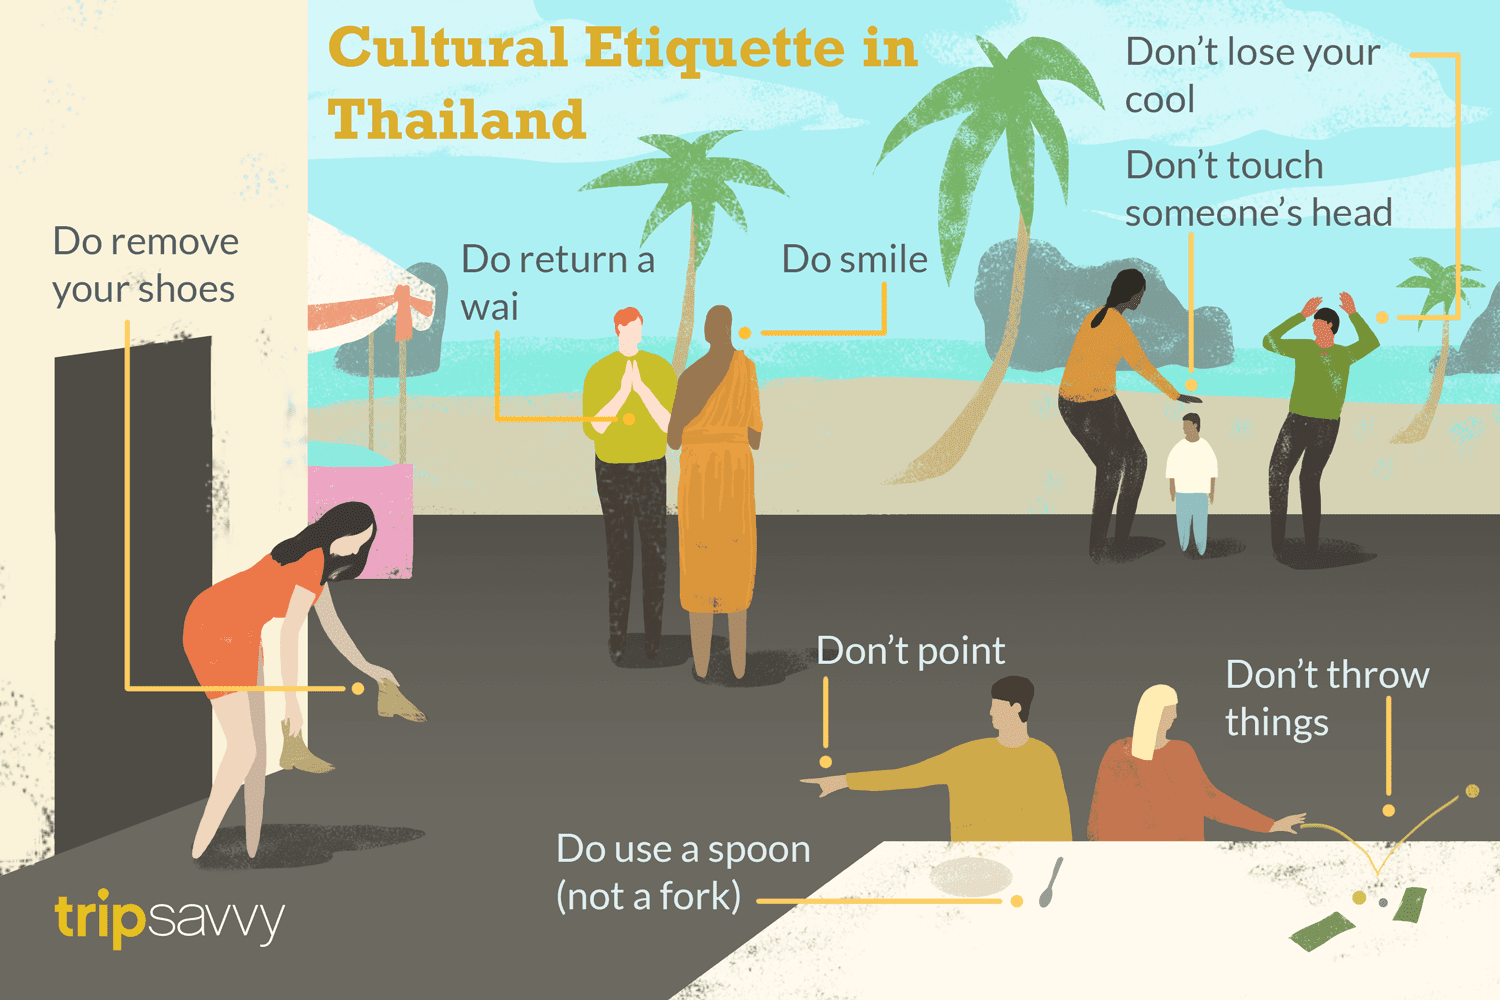 Guide To Cultural Etiquette In Thailand